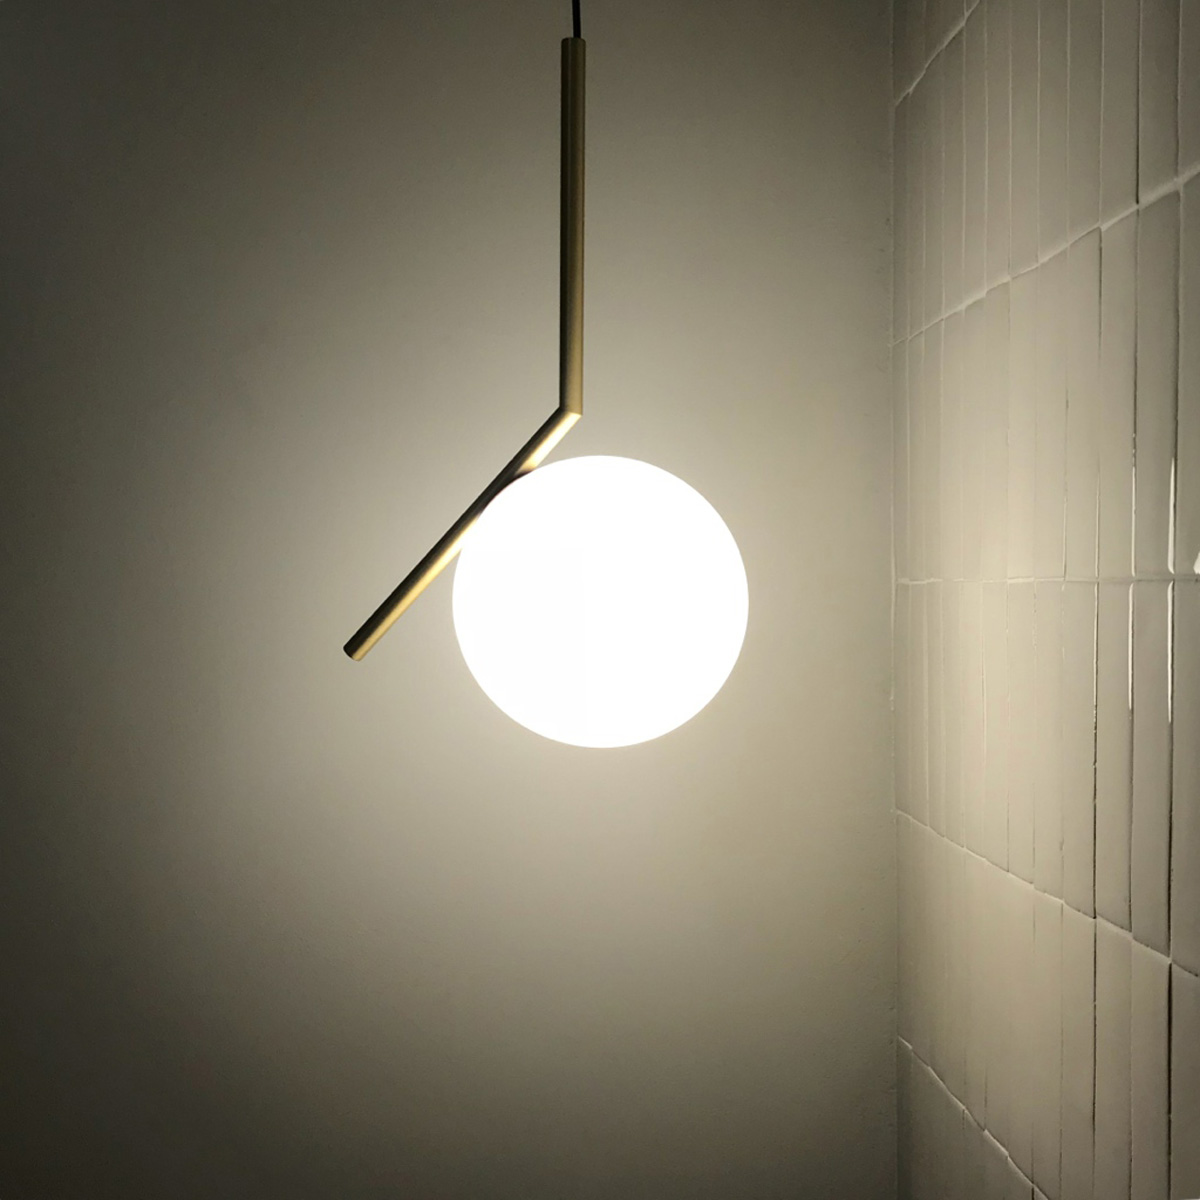 kickoffice casa ac flos ic lights pendant